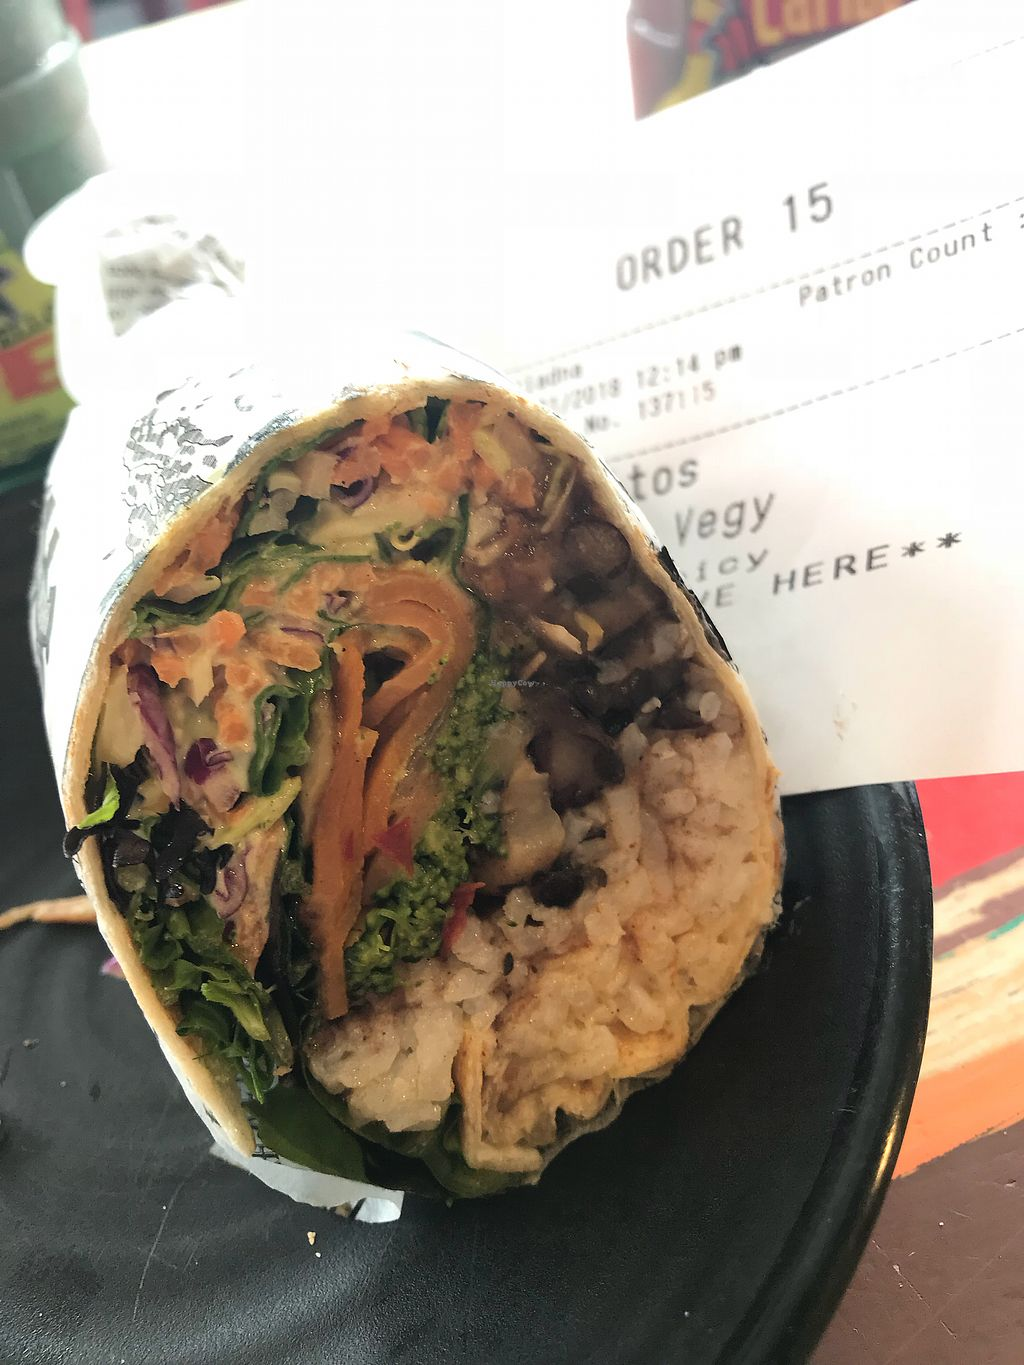 """Photo of Caribe Latin Kitchen  by <a href=""""/members/profile/tulips.and.trains"""">tulips.and.trains</a> <br/>EAT THIS!!! <br/> January 6, 2018  - <a href='/contact/abuse/image/52953/343511'>Report</a>"""